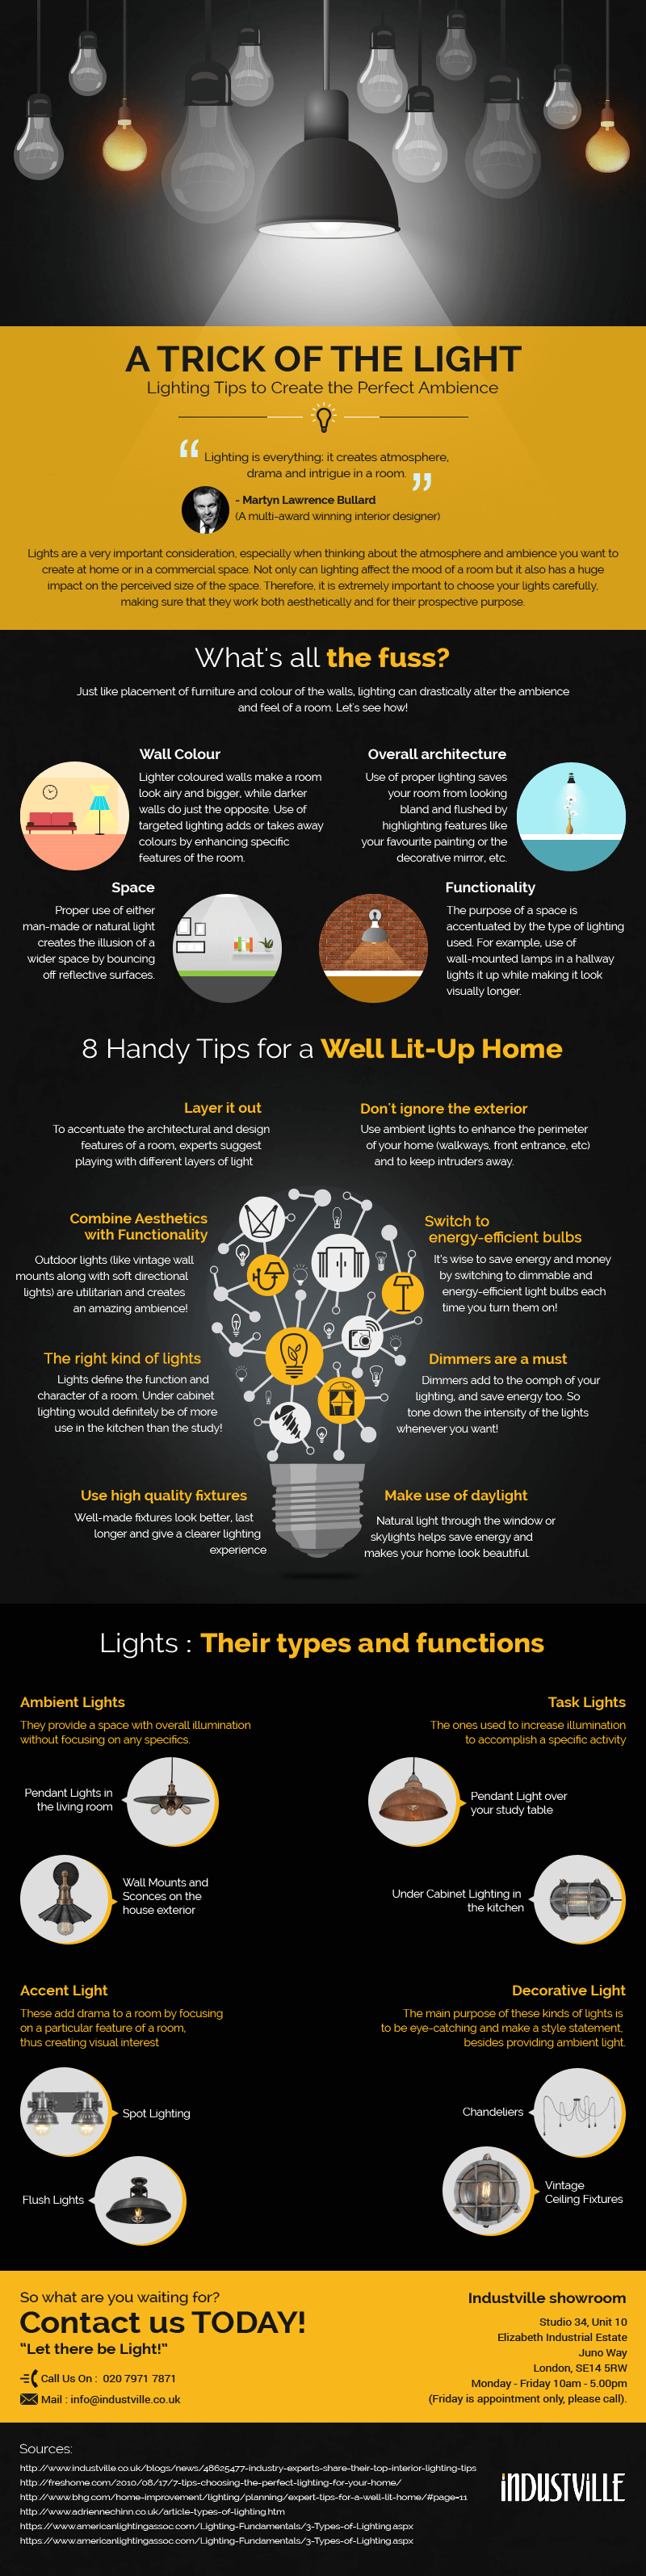 How to Choose the Right Lights for Your Home #infographic